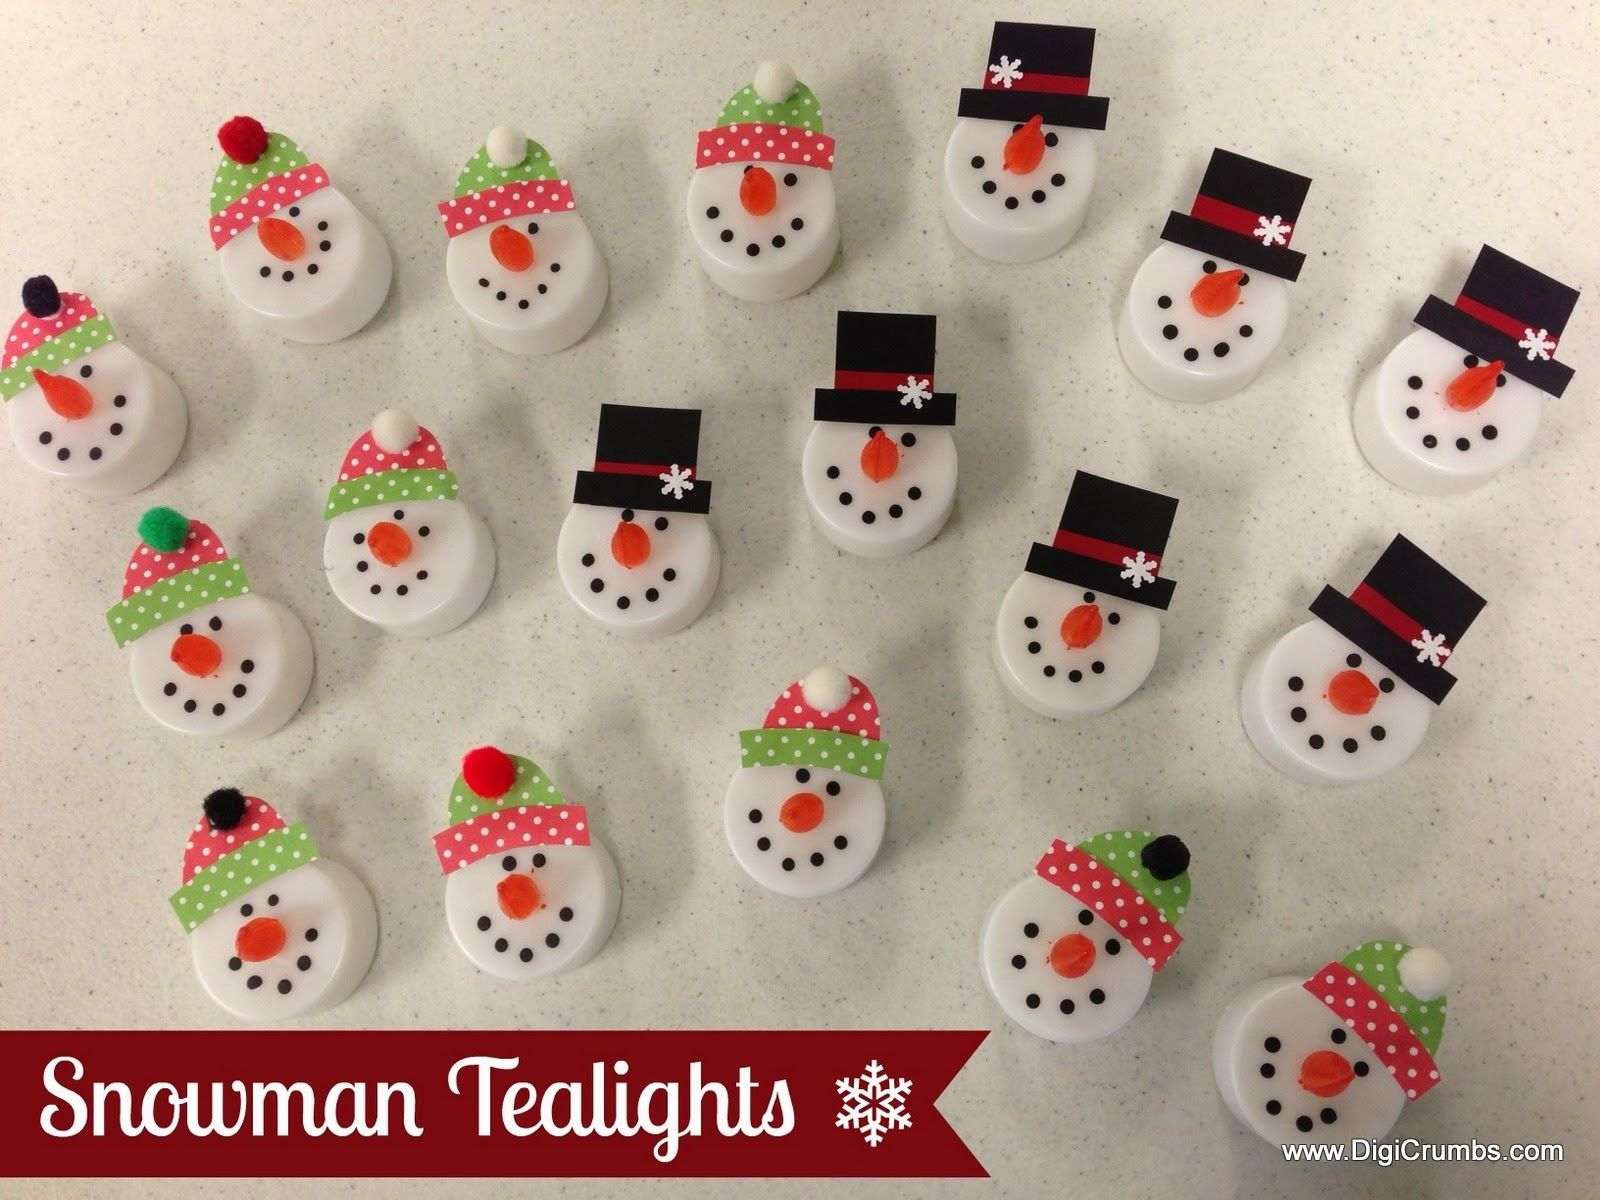 Snowman Tealights Makes A Cute Ornament Magnet Pin Or Package Topper Christmas Crafts To Sell Christmas Crafts To Make And Sell Easy Christmas Crafts